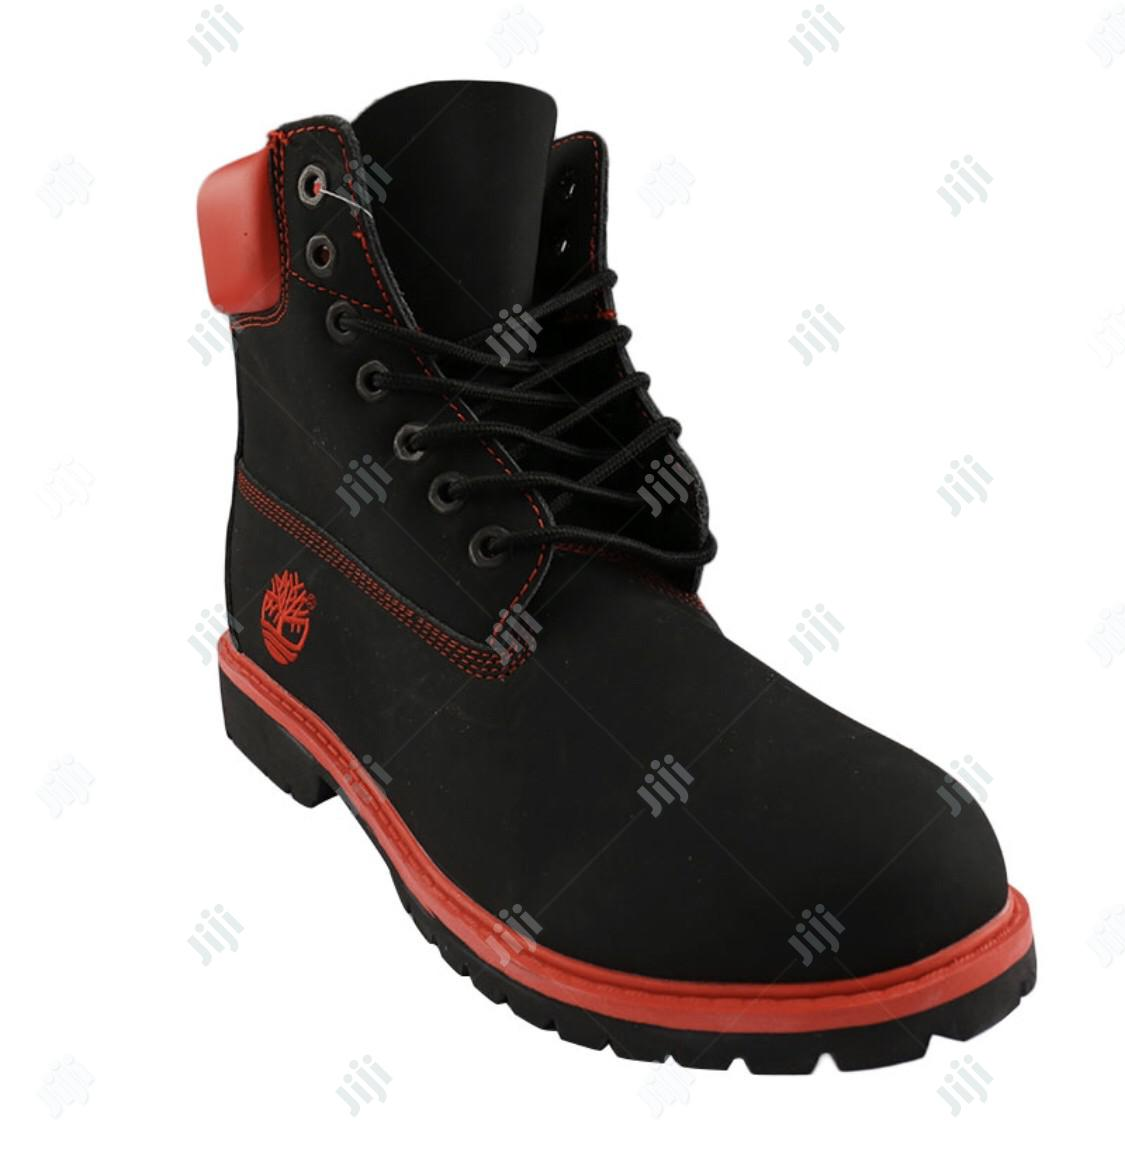 Timberland Boots in Black and Red in